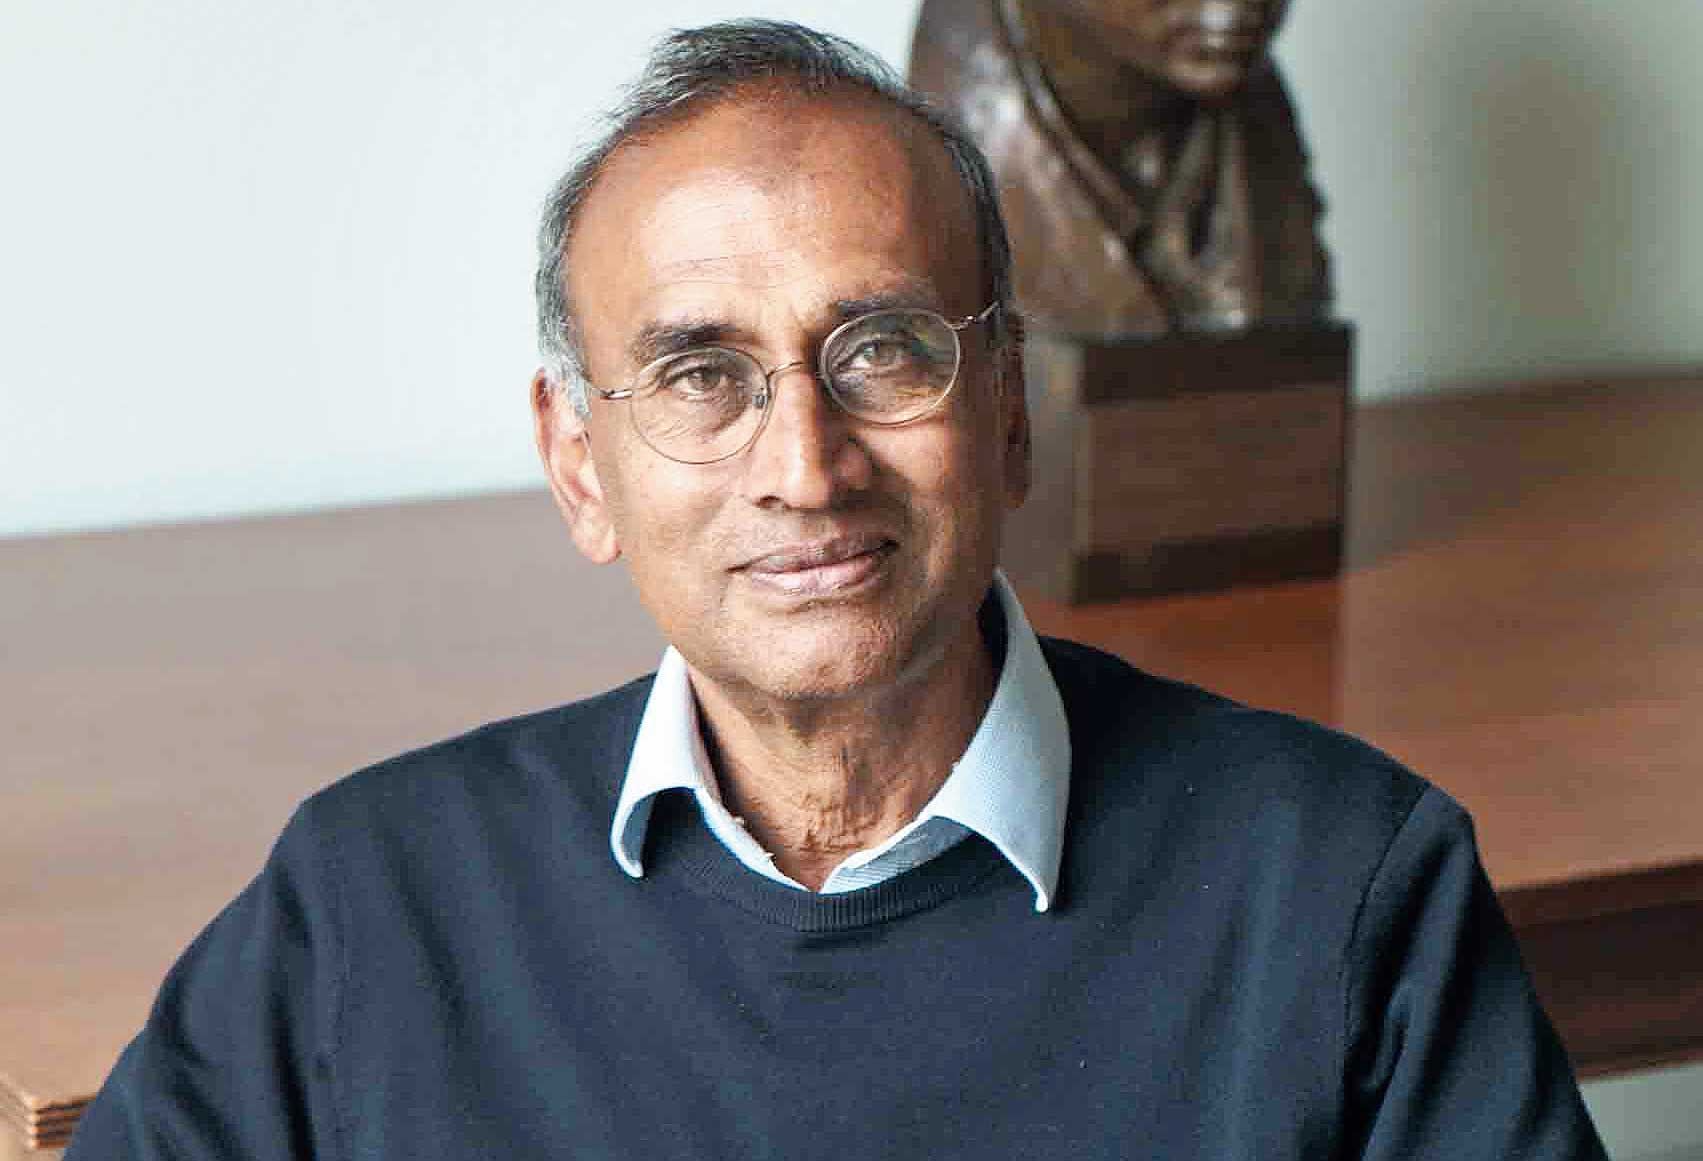 Venkatraman Ramakrishnan at the Royal Society with a bust of Srinivasa Ramanujan in the background.